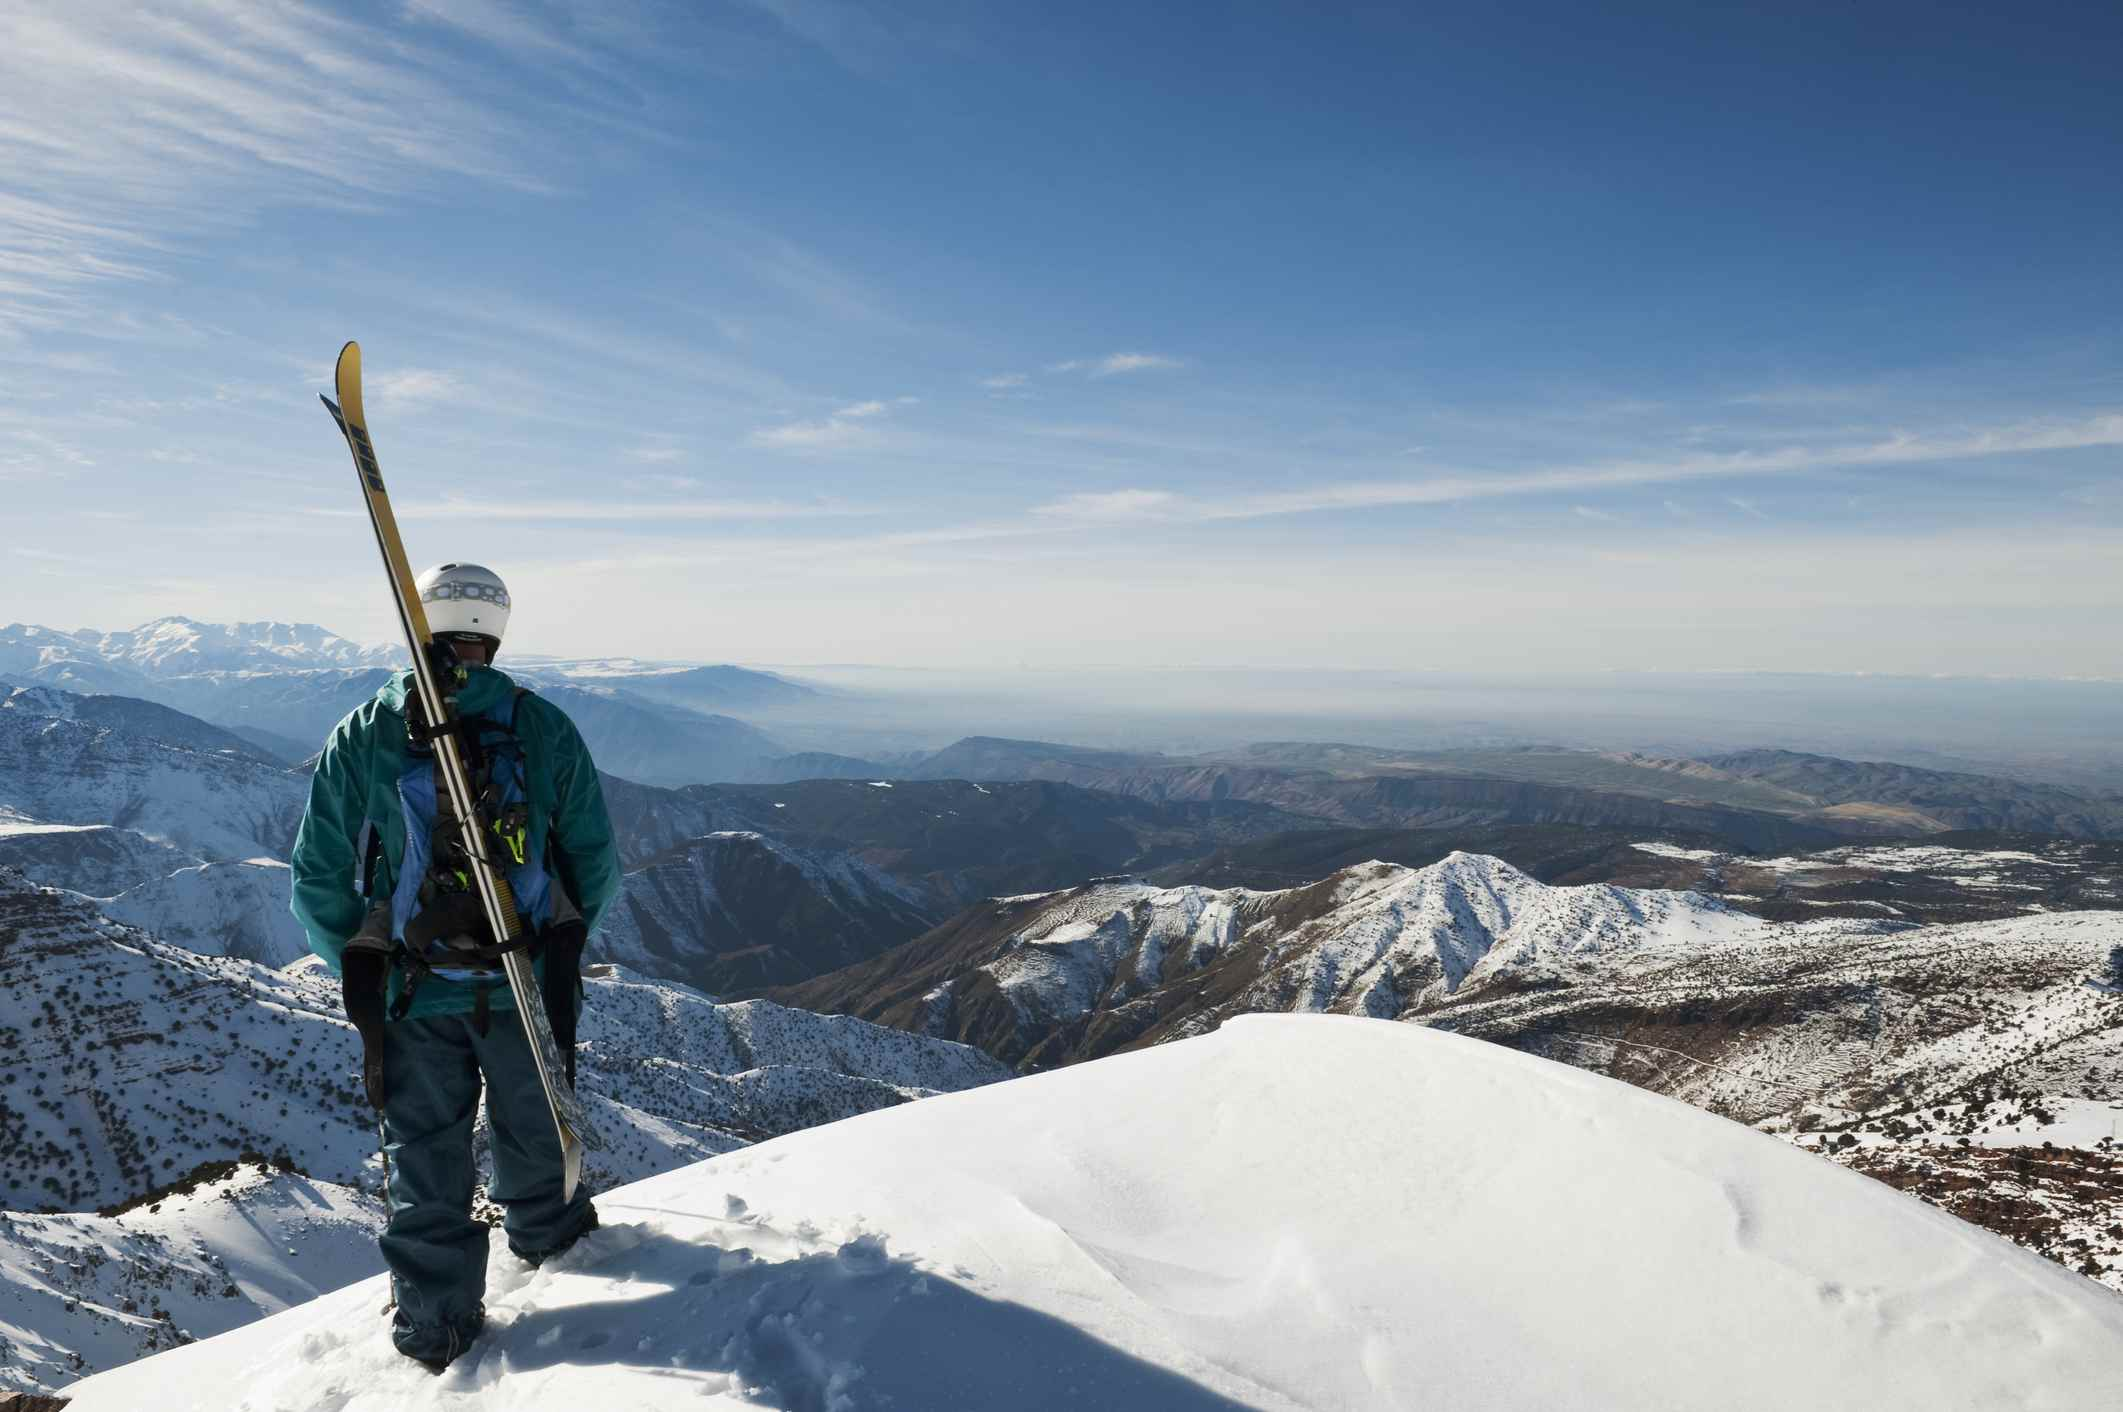 Skier at the top of a peak in the Atlas Mountains